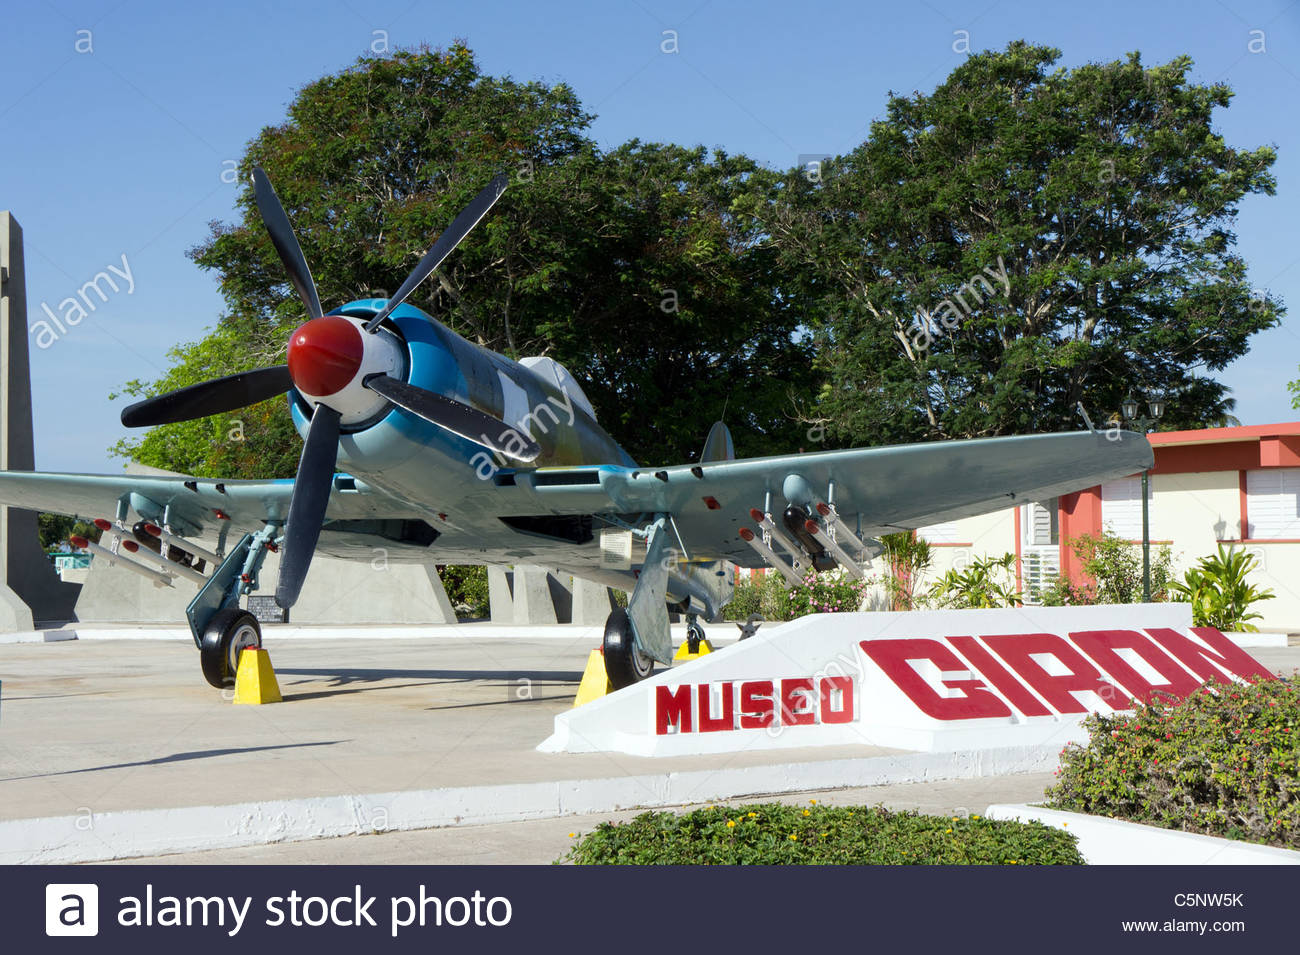 Museo Playa Girón Western Cuba, Playa Giron Stock Photos & Playa Giron Stock Images - Alamy